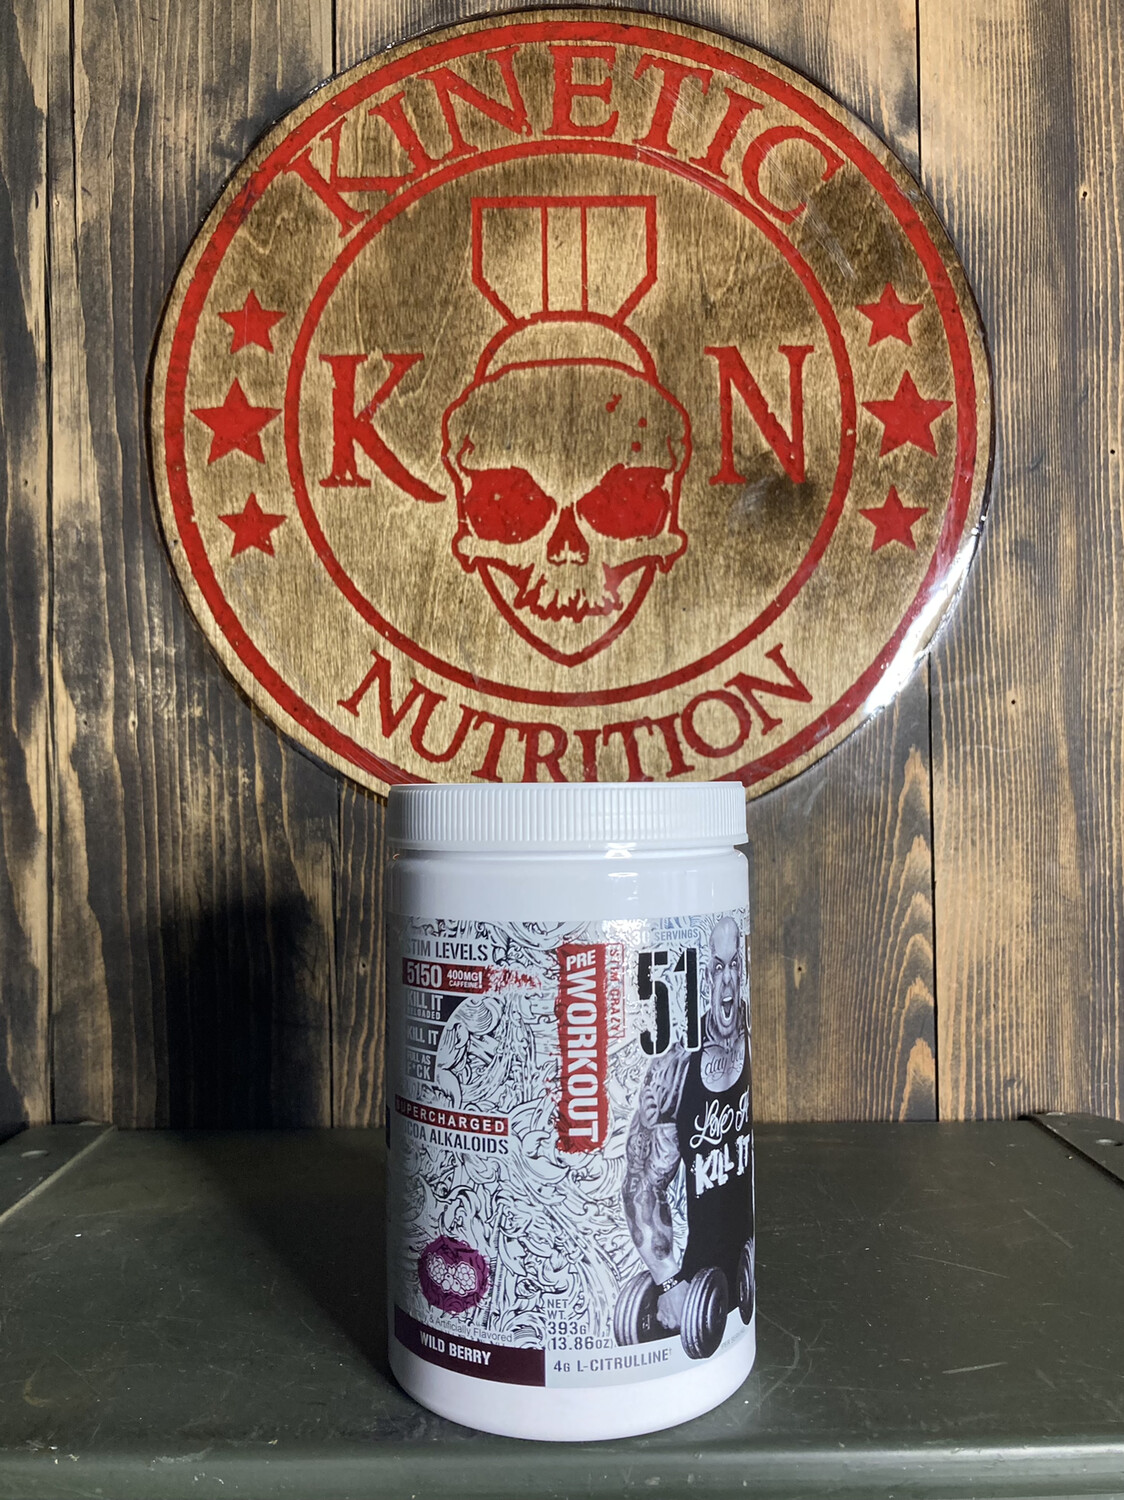 5% Nutrition, 5150, 30 Servings, Wild Berry